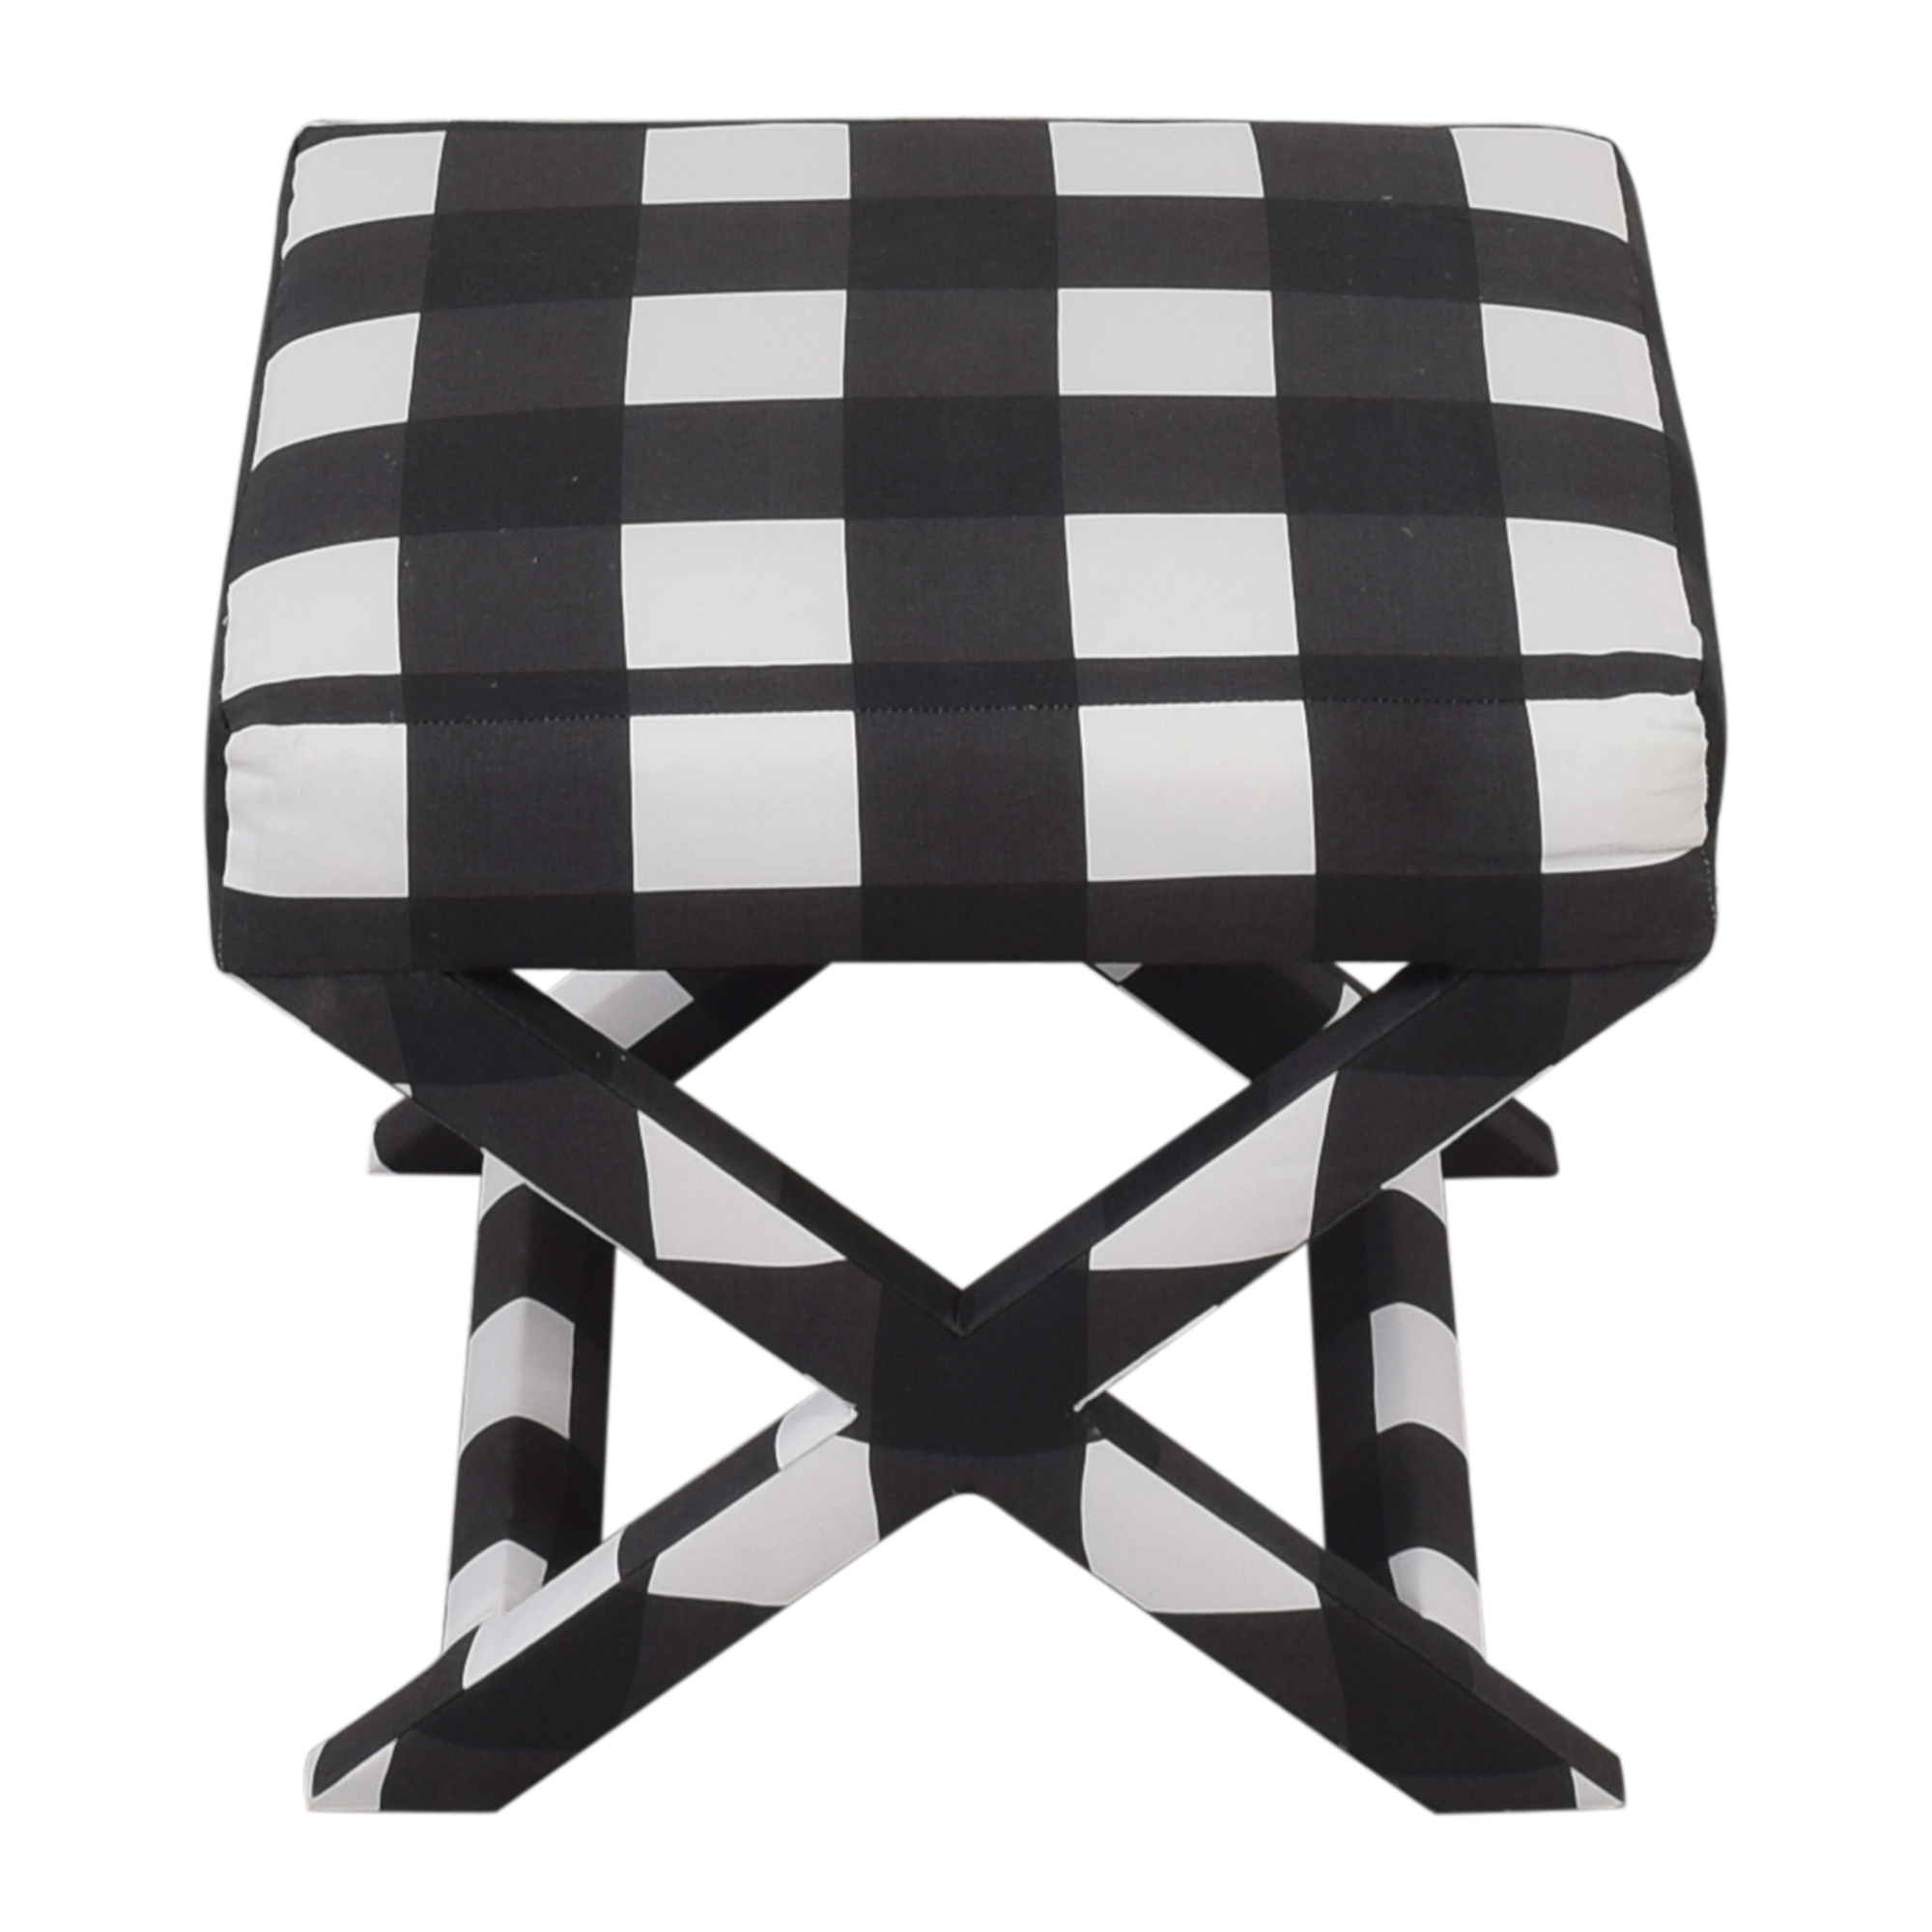 The Inside The Inside Black Check X-Bench Ottomans